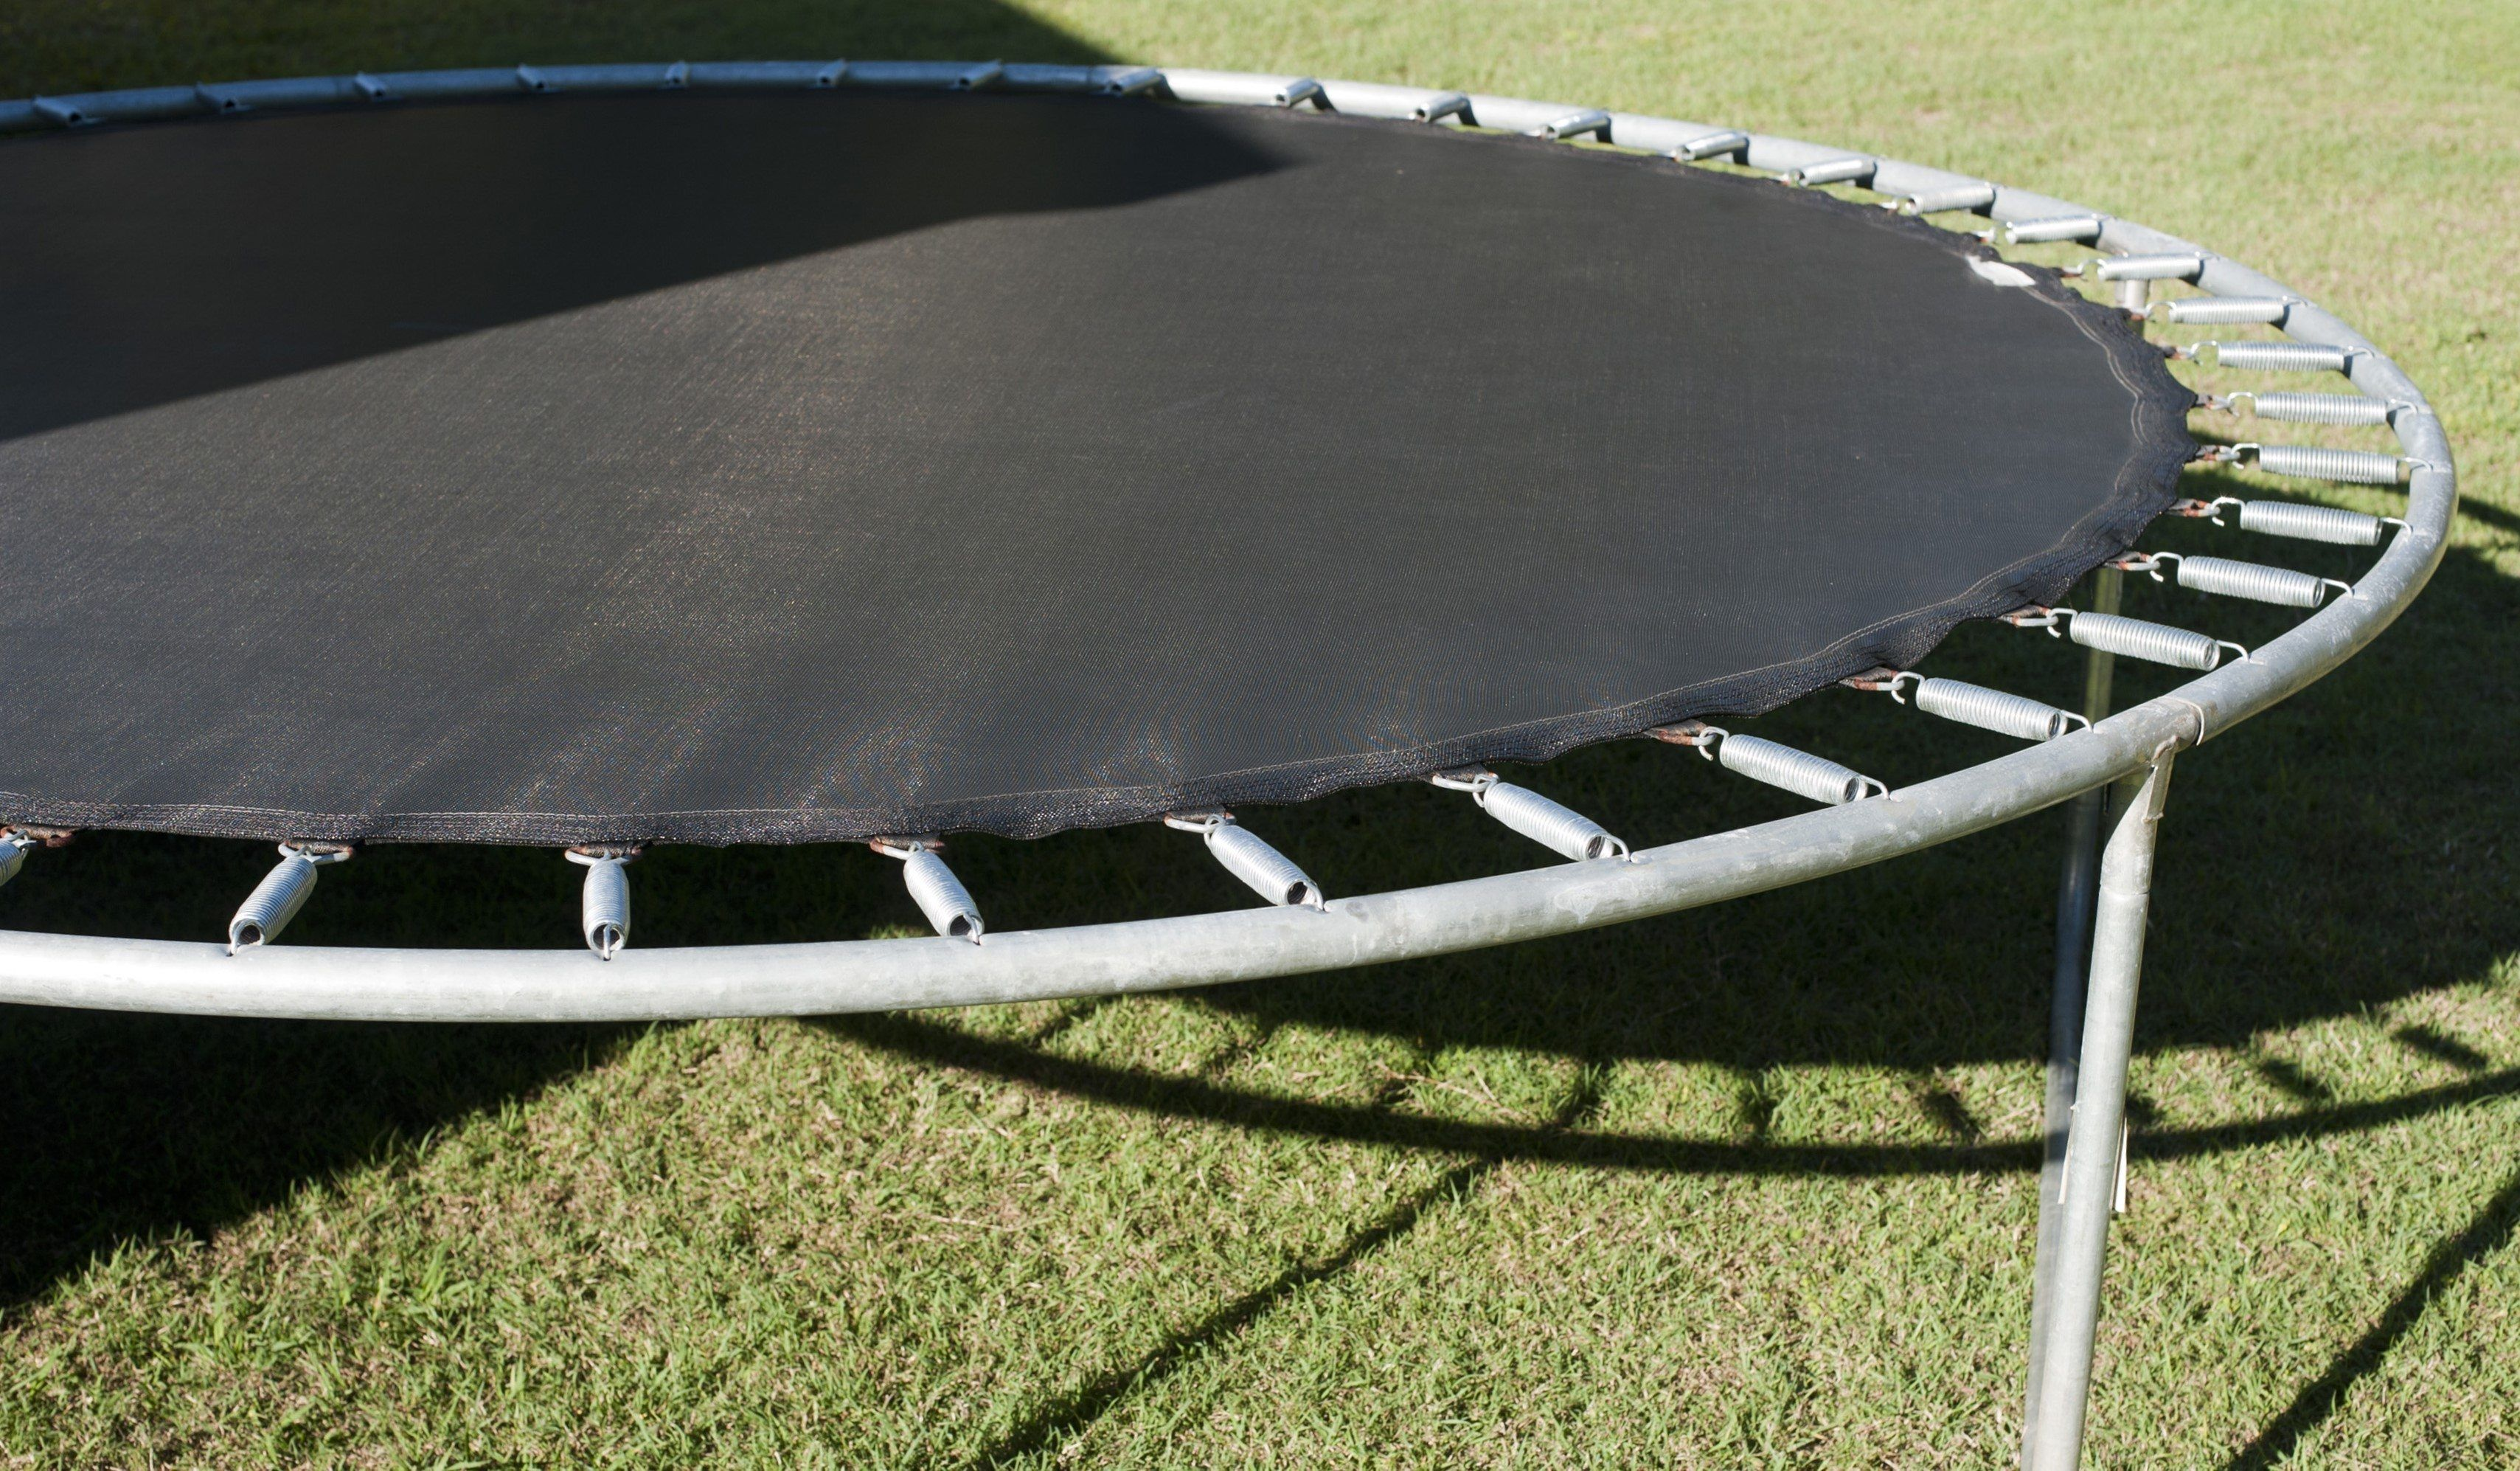 Pin By Ckkmym On Abul In 2020 Best Trampoline Trampoline Steps Outdoor Entertaining Area